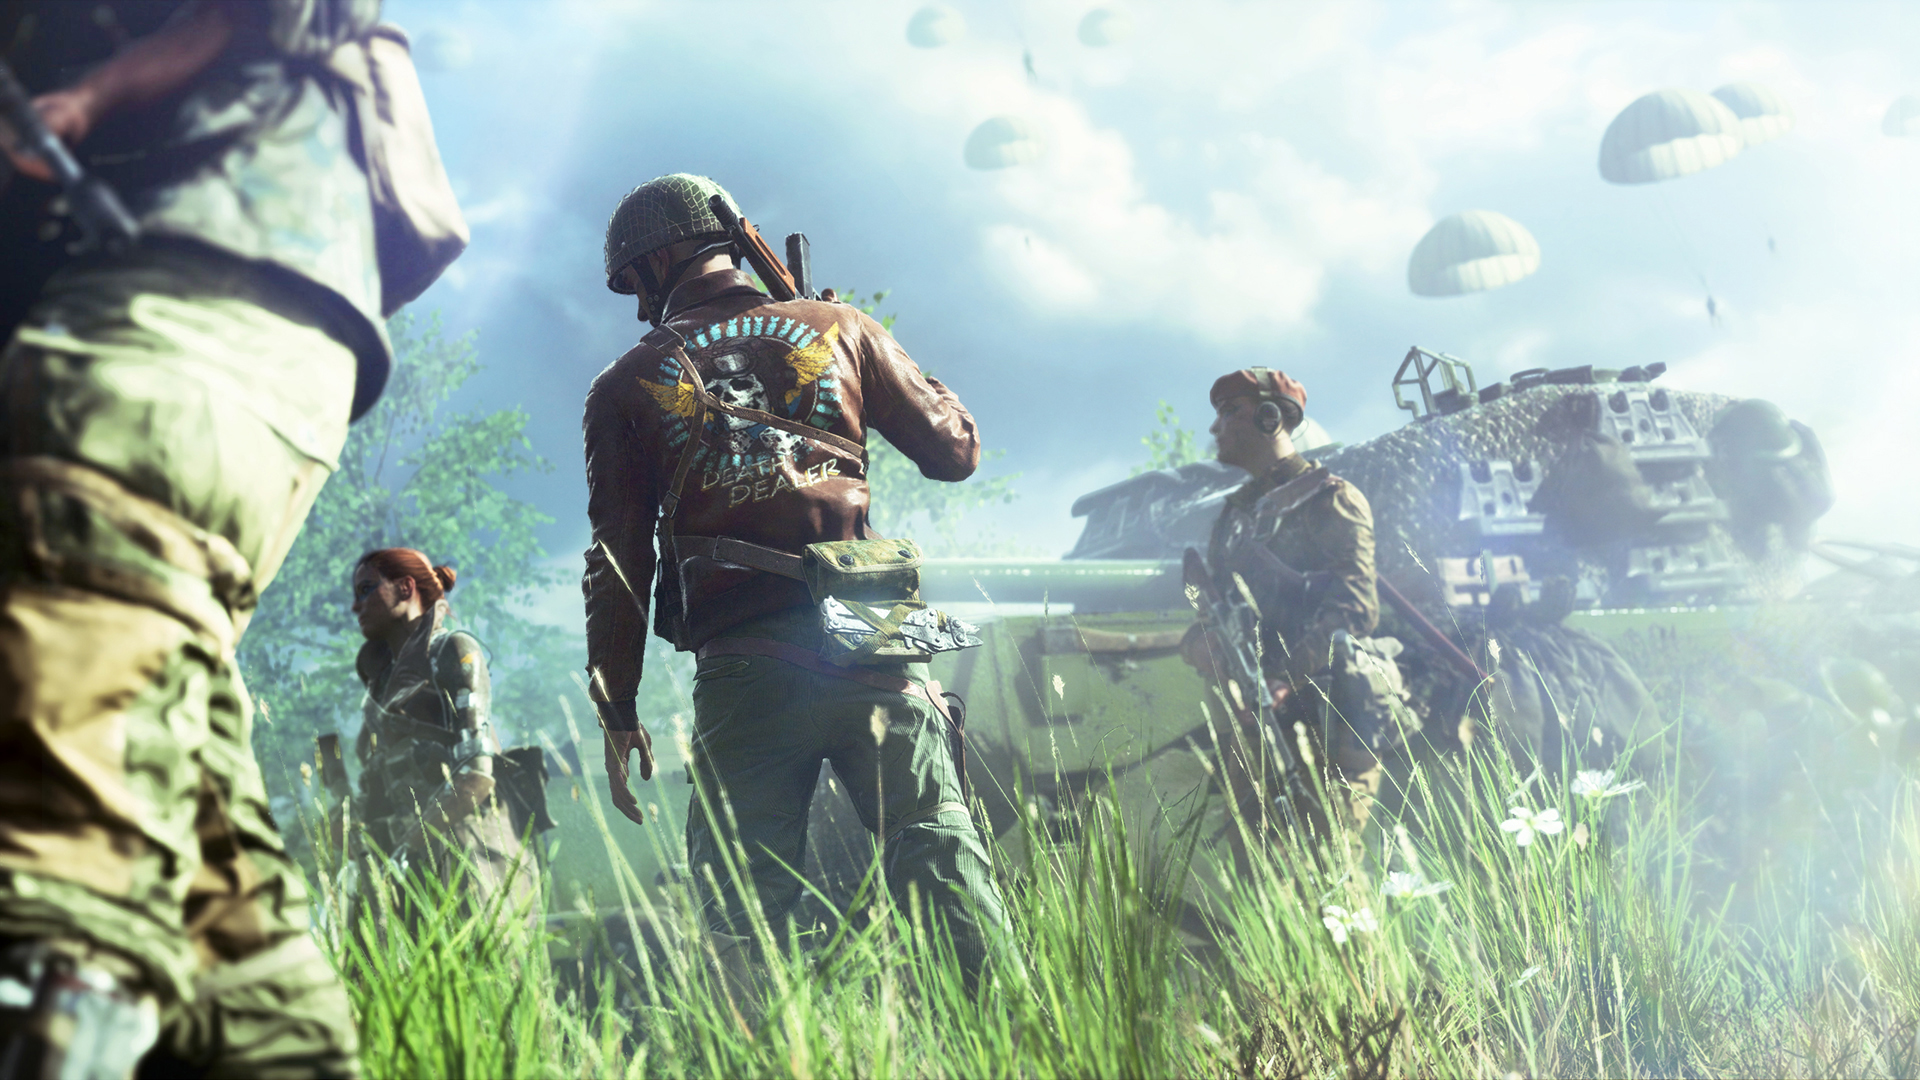 Battlefield 5 deserves more love for its amazing team play